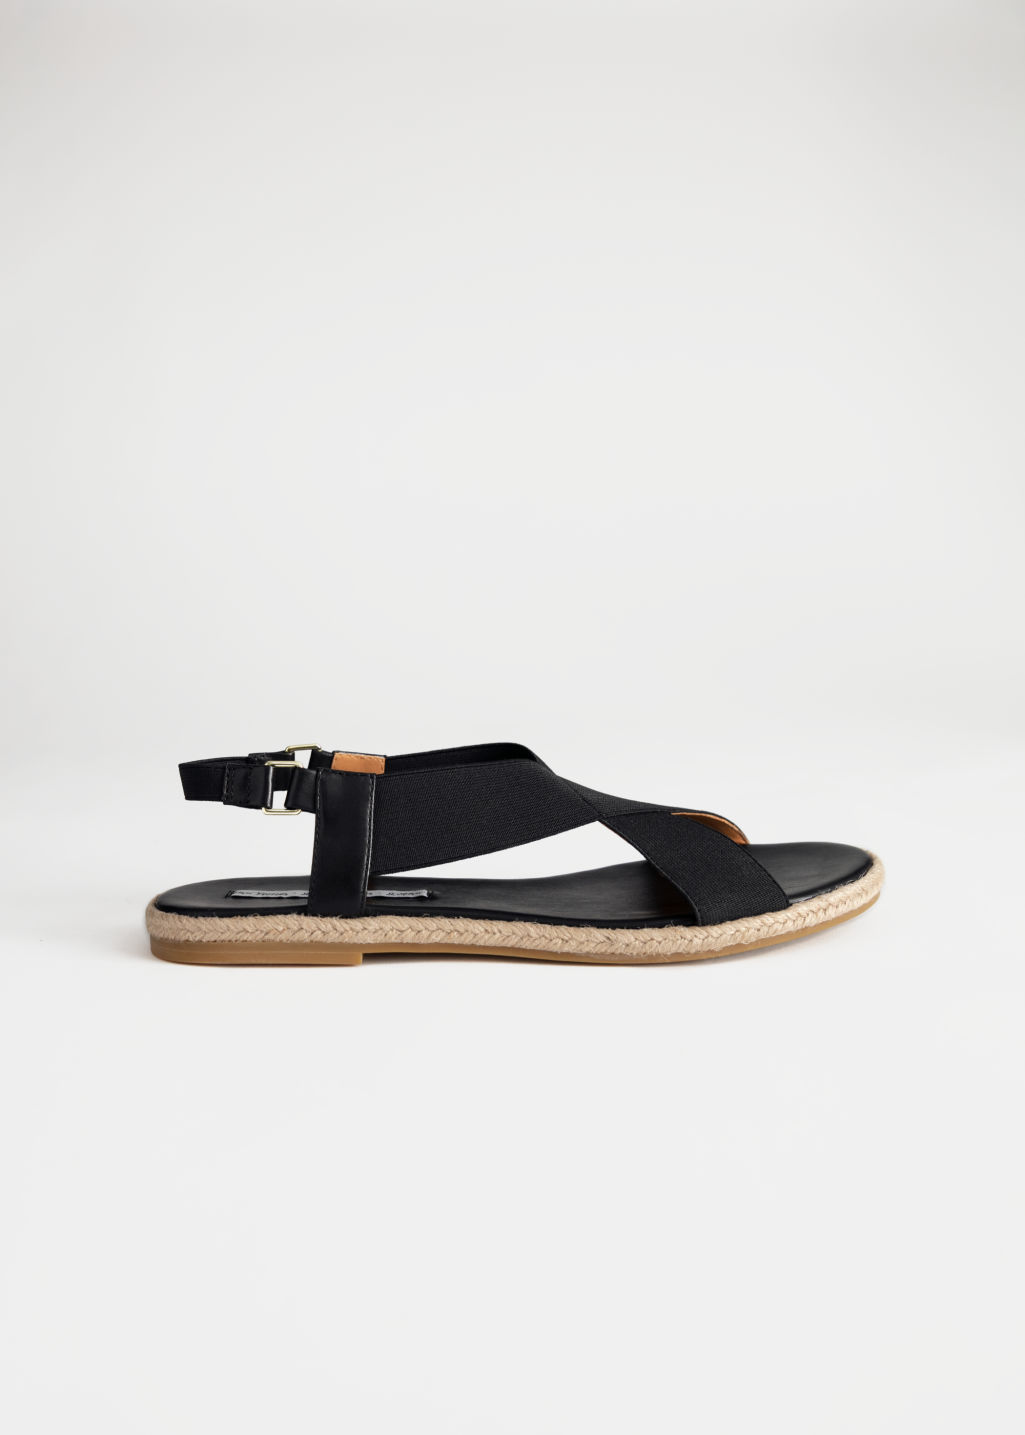 055088ed5f78 Cross Strap Sandal - Black - Flat sandals -   Other Stories